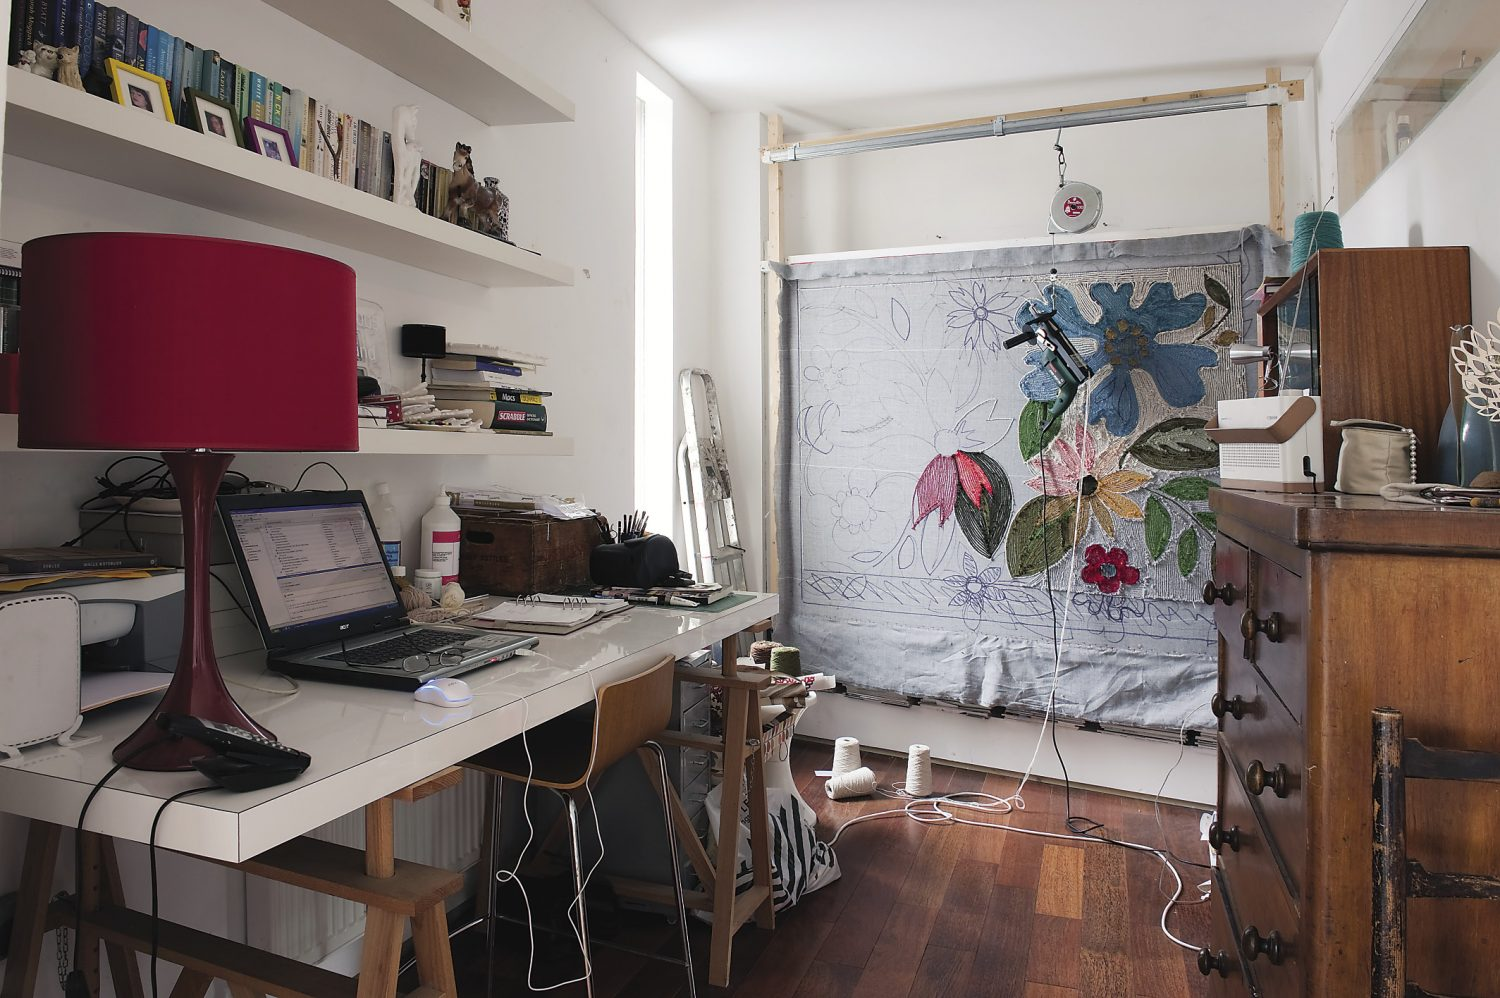 """Anna's studio is conveniently located in one corner of the airy bedroom; she is currently in the process of creating a vibrant floral rug. The design is based on the classic 1960s ceramics called """"Elizabethan"""" by Portobello"""